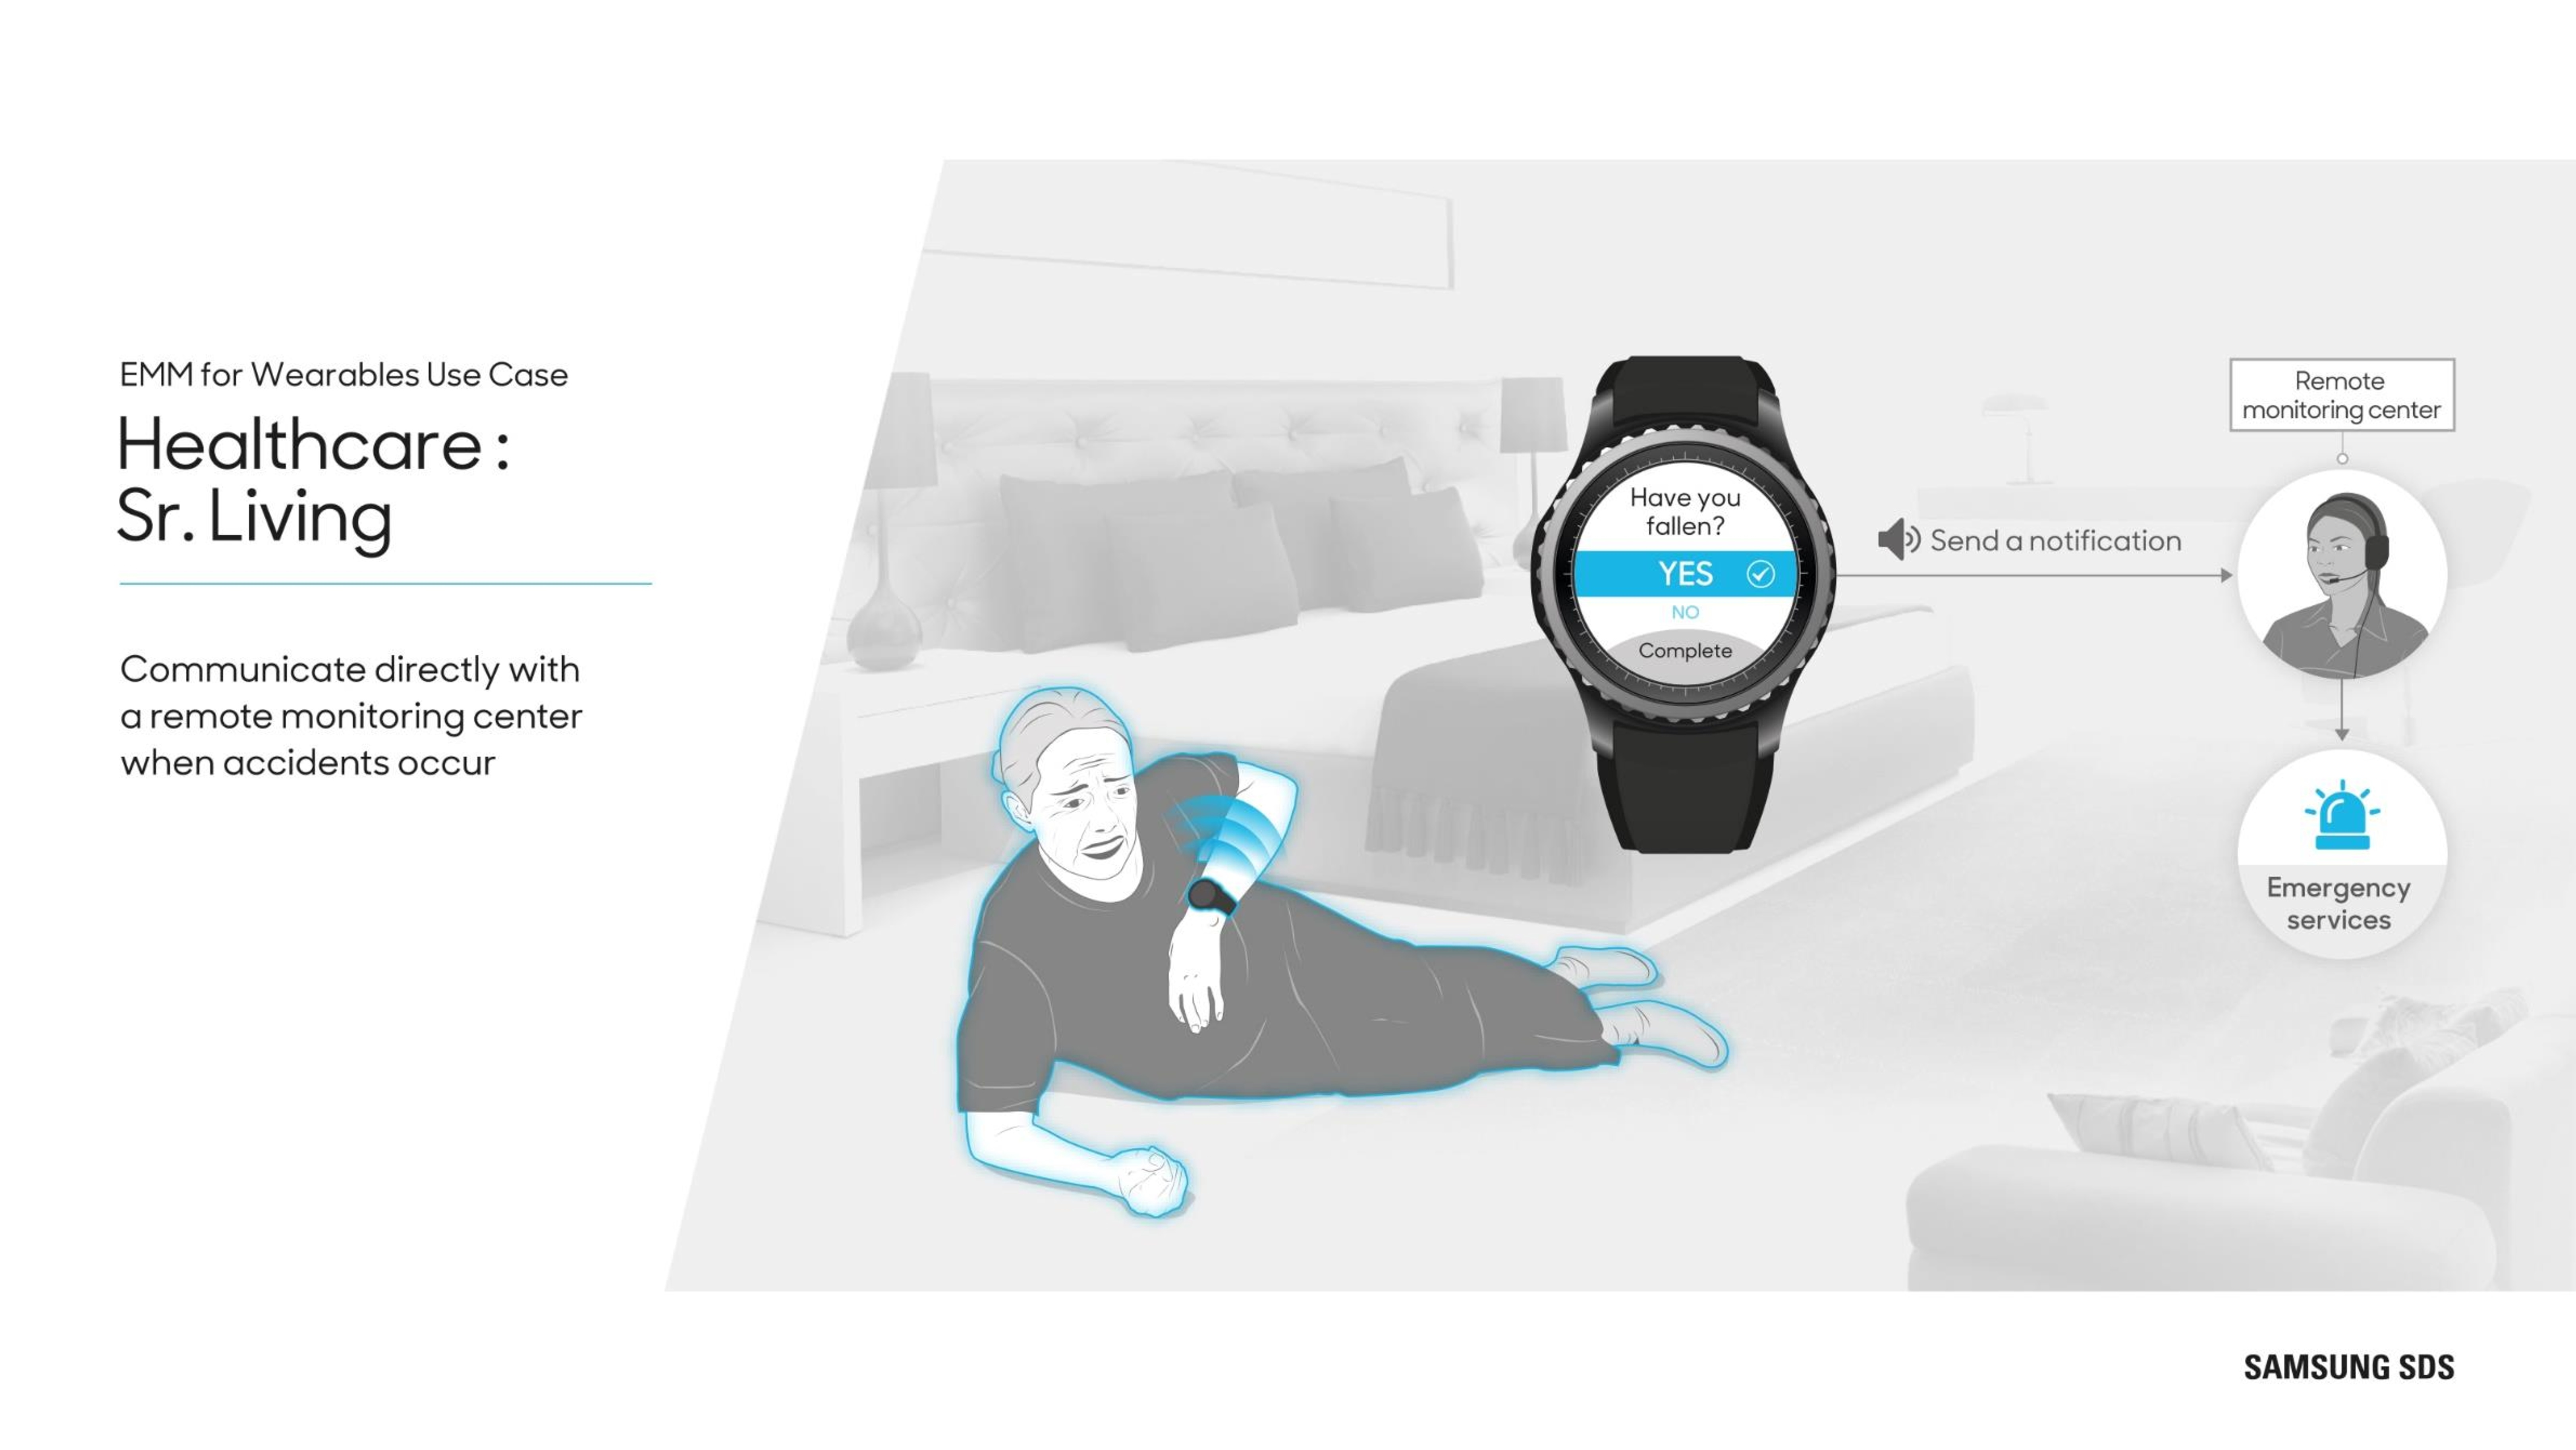 Wearables in Healthcare Communicate directly with a remote monitor center when accidents occur